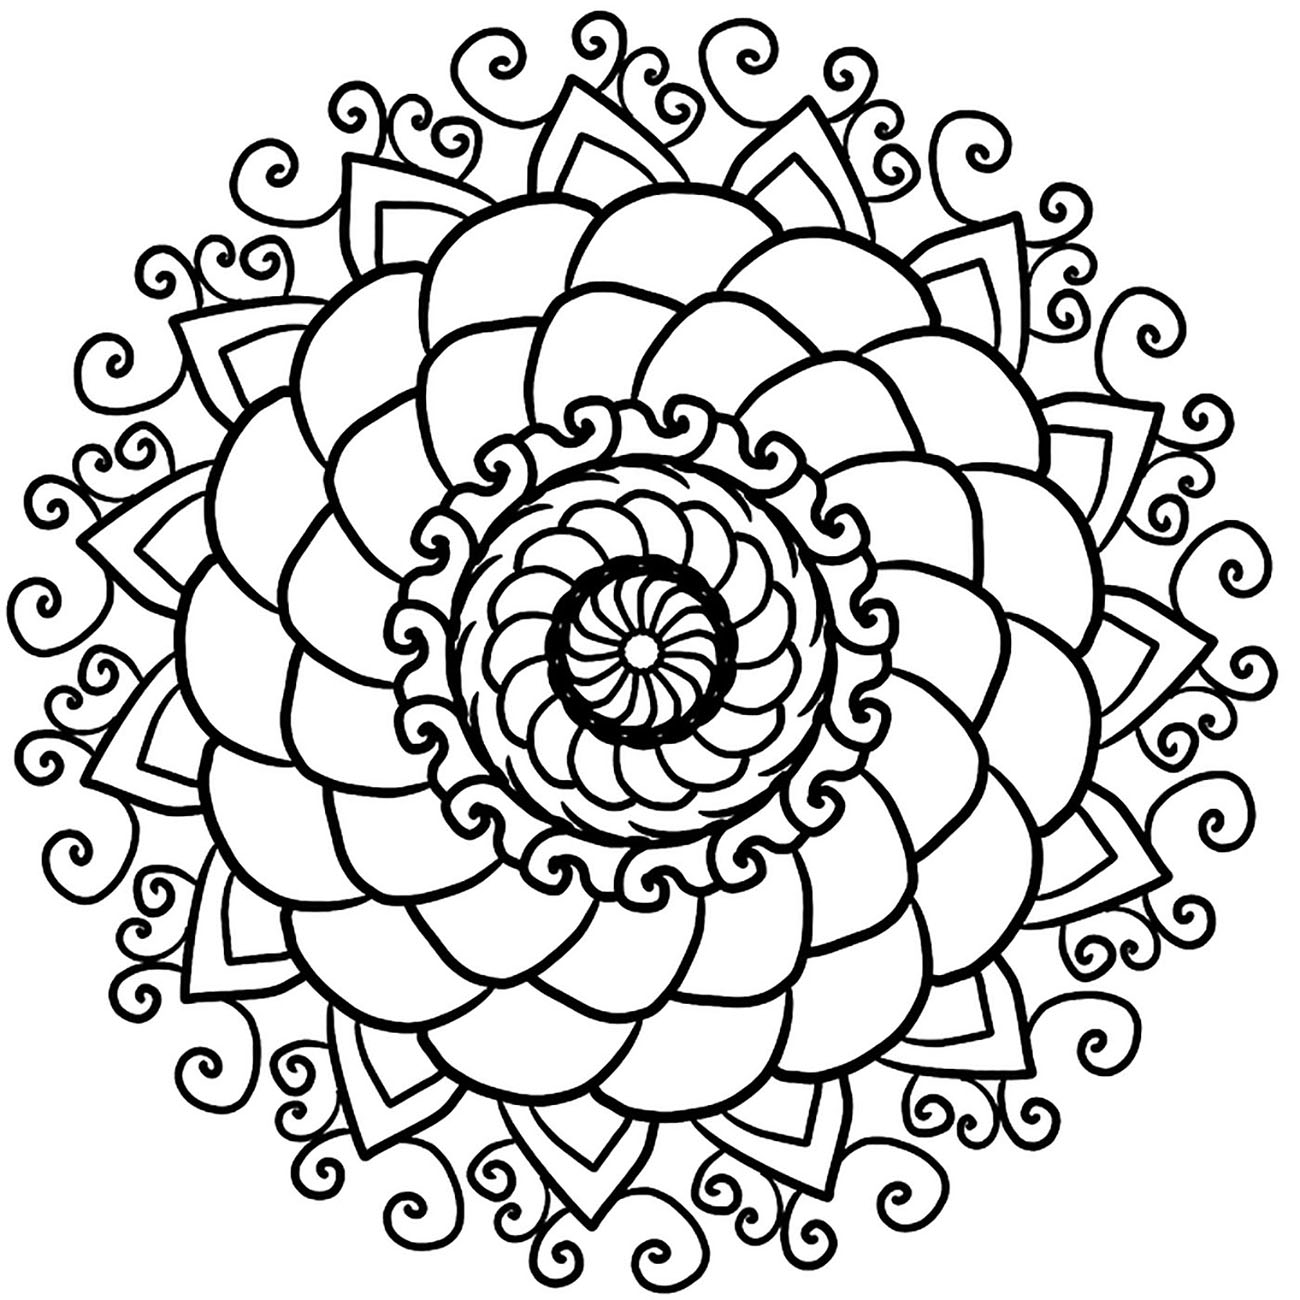 Mandala Anti Stress Simple Mandalas Zen Anti Stress 100